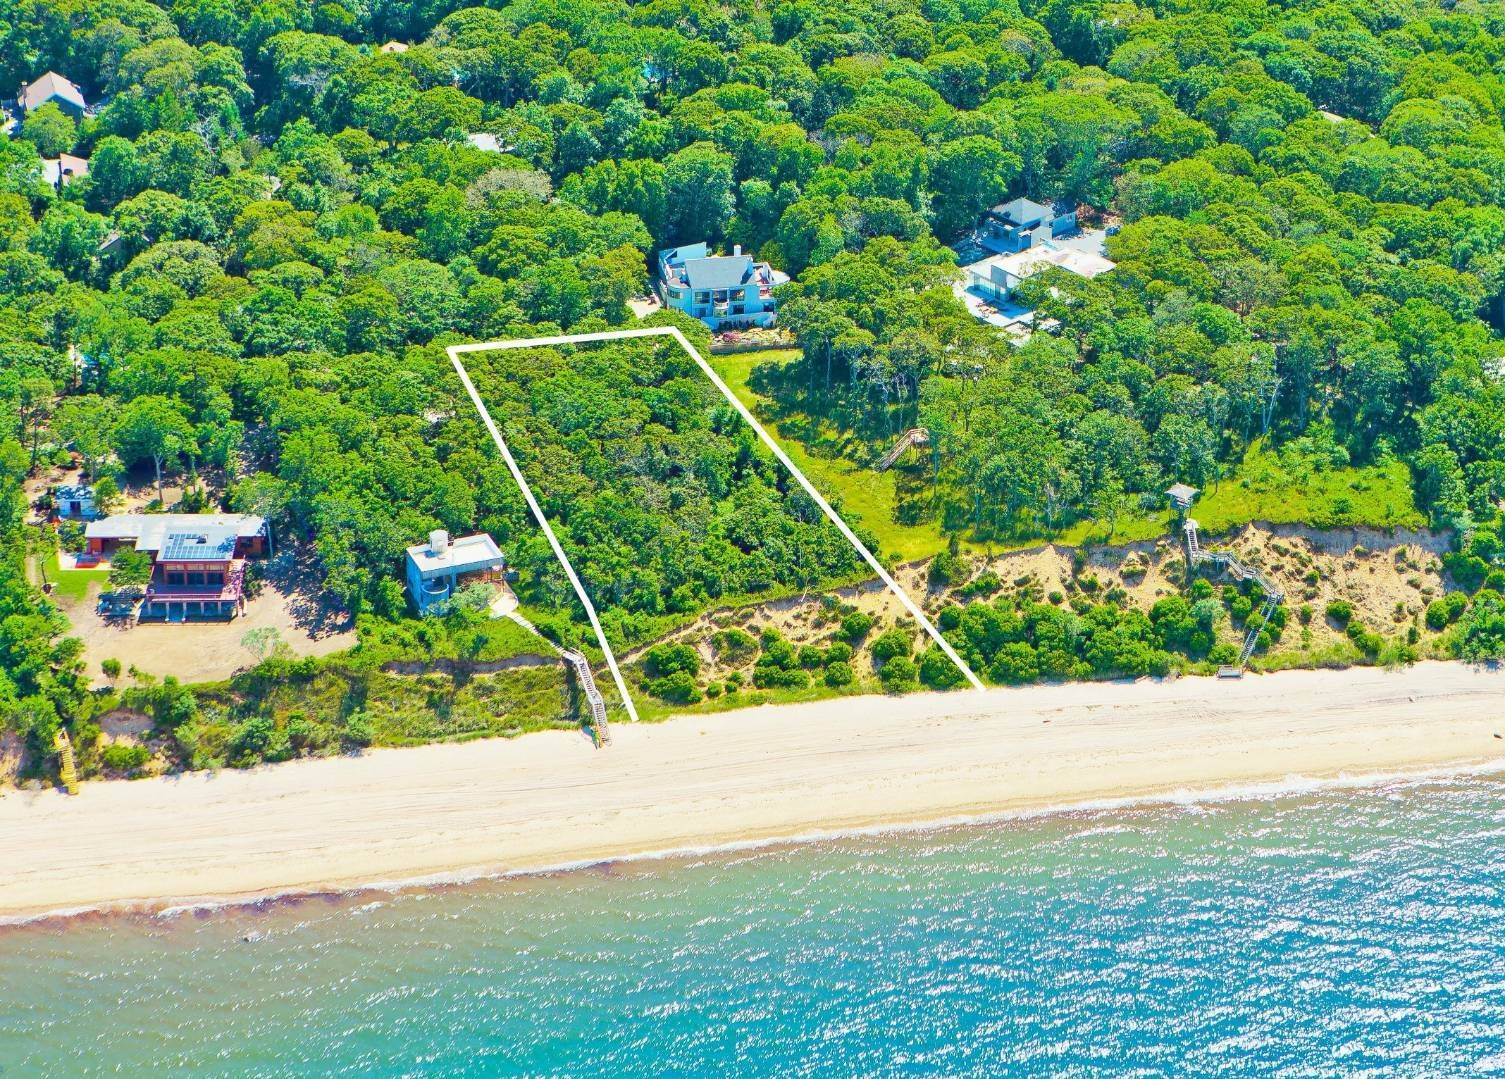 Land for Sale at Incomparable Waterfront Land 39 Milina Drive, East Hampton, NY 11937